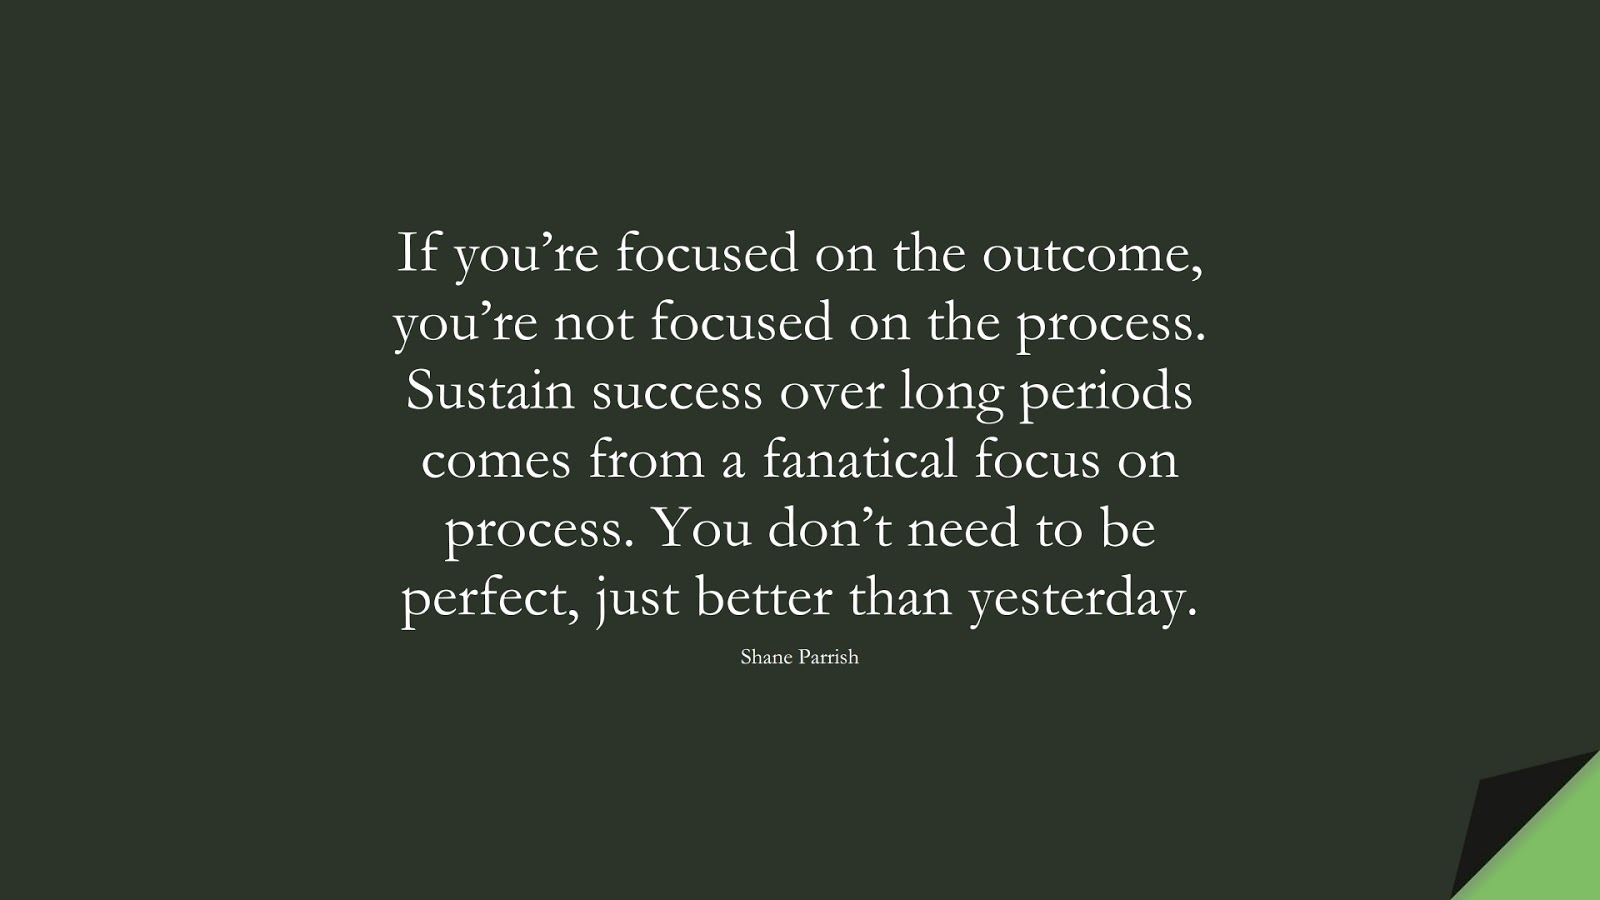 If you're focused on the outcome, you're not focused on the process. Sustain success over long periods comes from a fanatical focus on process. You don't need to be perfect, just better than yesterday. (Shane Parrish);  #PerseveranceQuotes